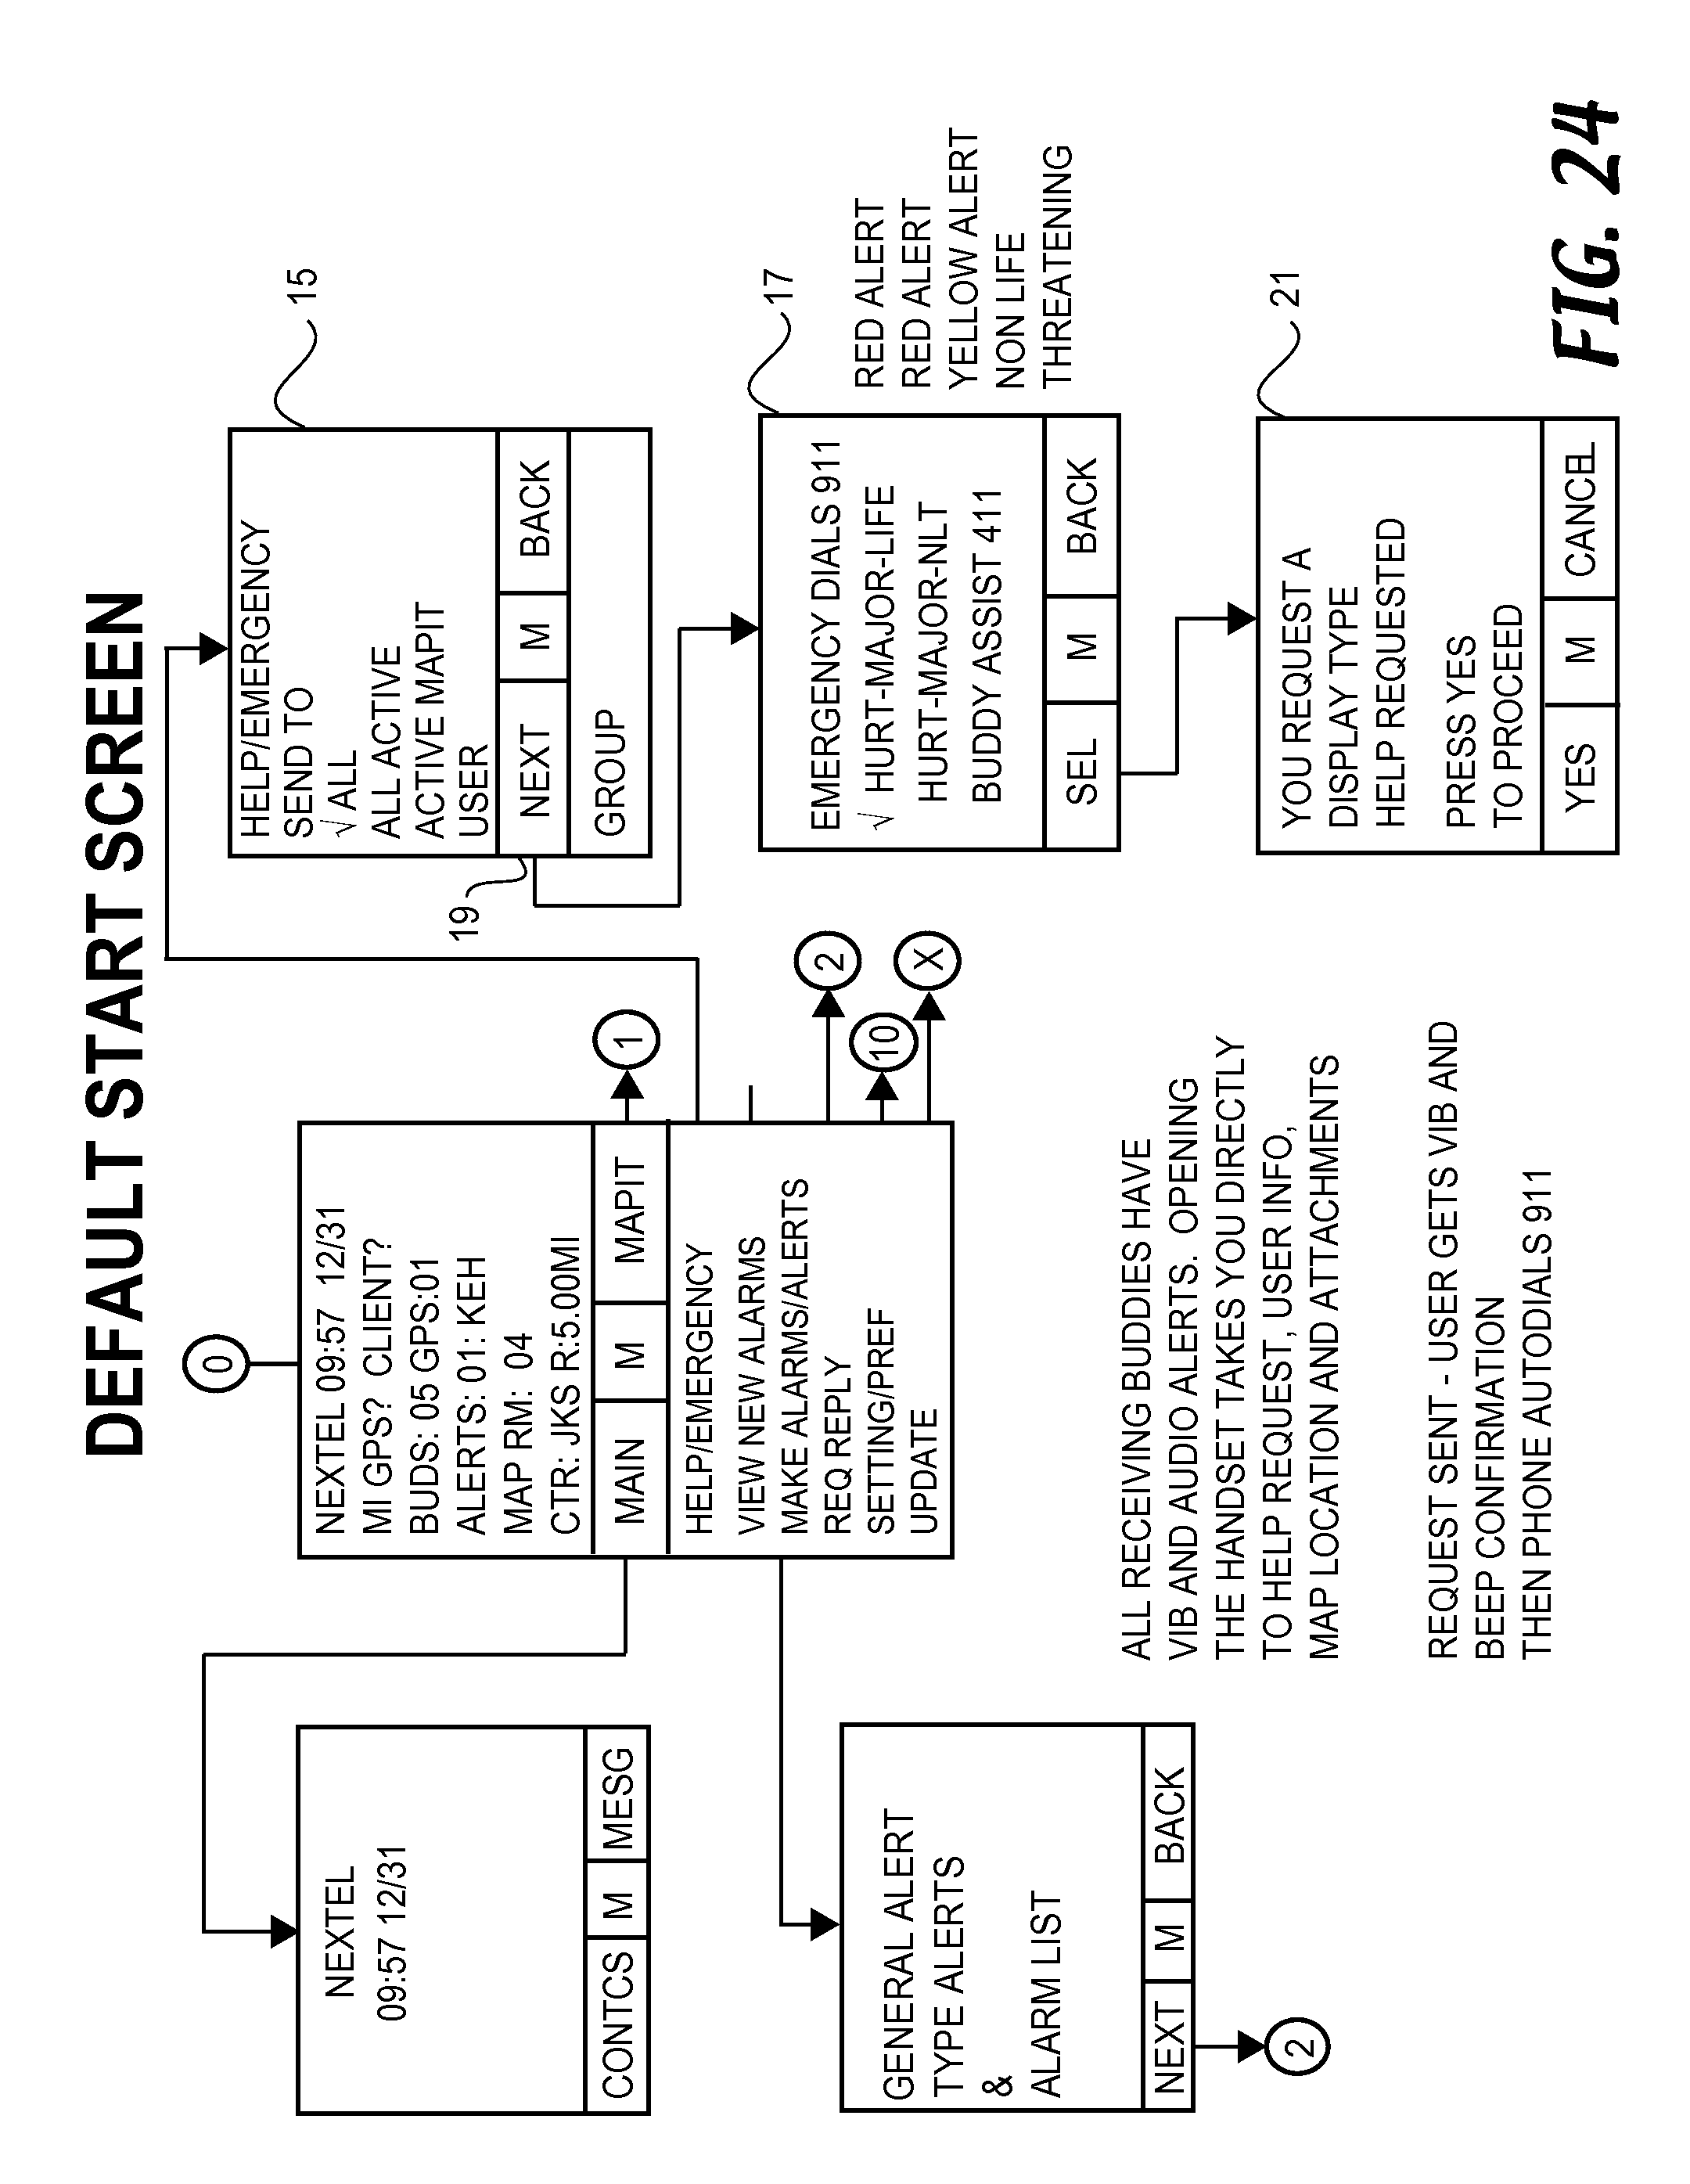 Us8798645b2 methods and systems for sharing position data and us8798645b2 methods and systems for sharing position data and tracing paths between mobile device users google patents fandeluxe Images